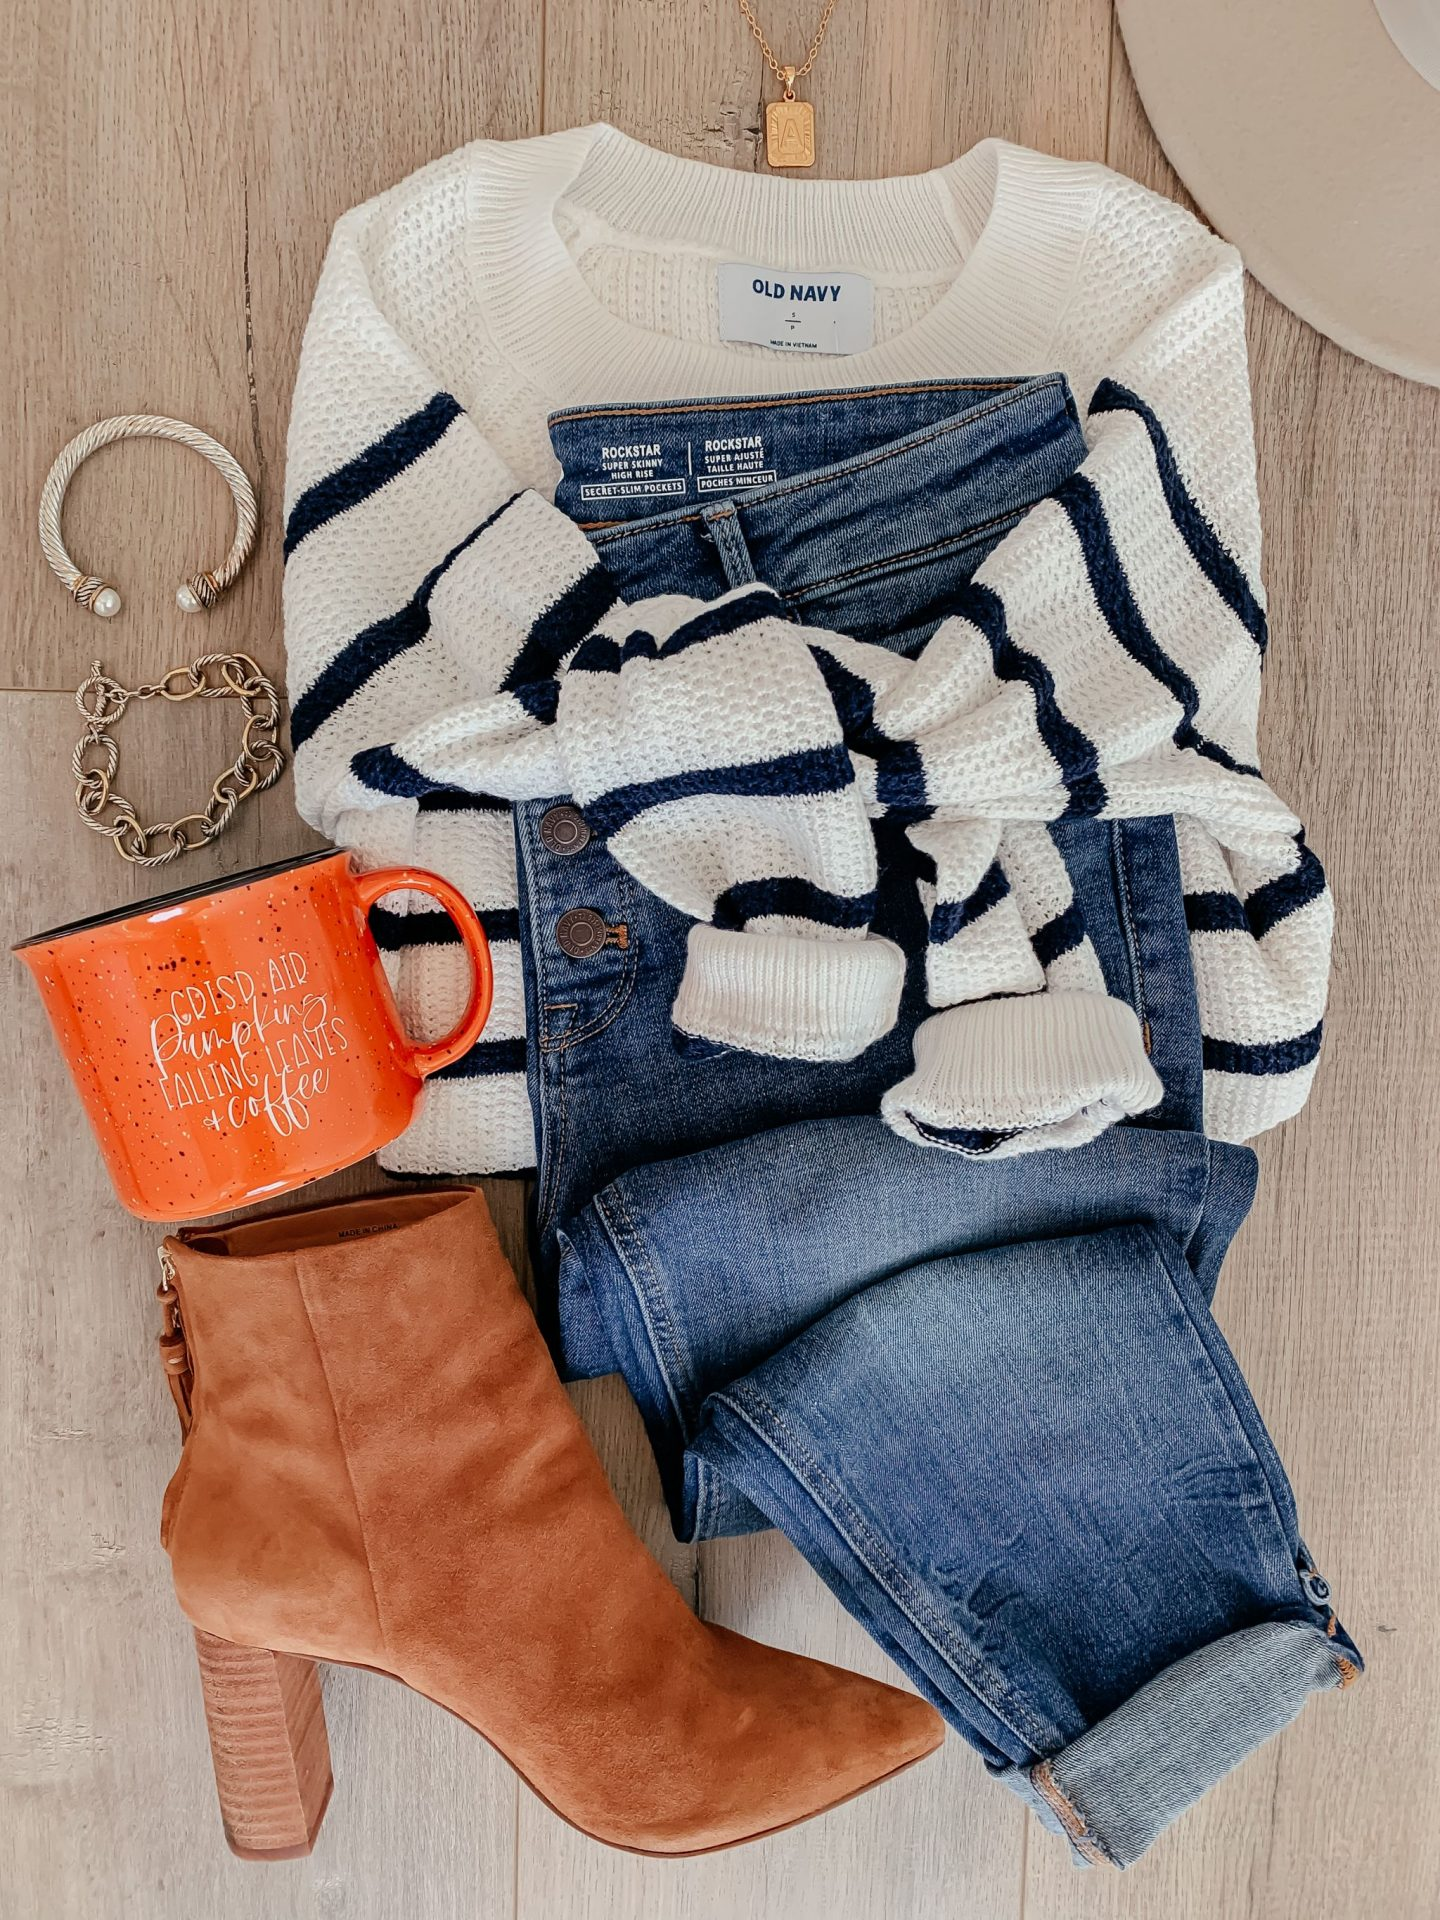 Budget Friendly Fall Outfits From Old Navy